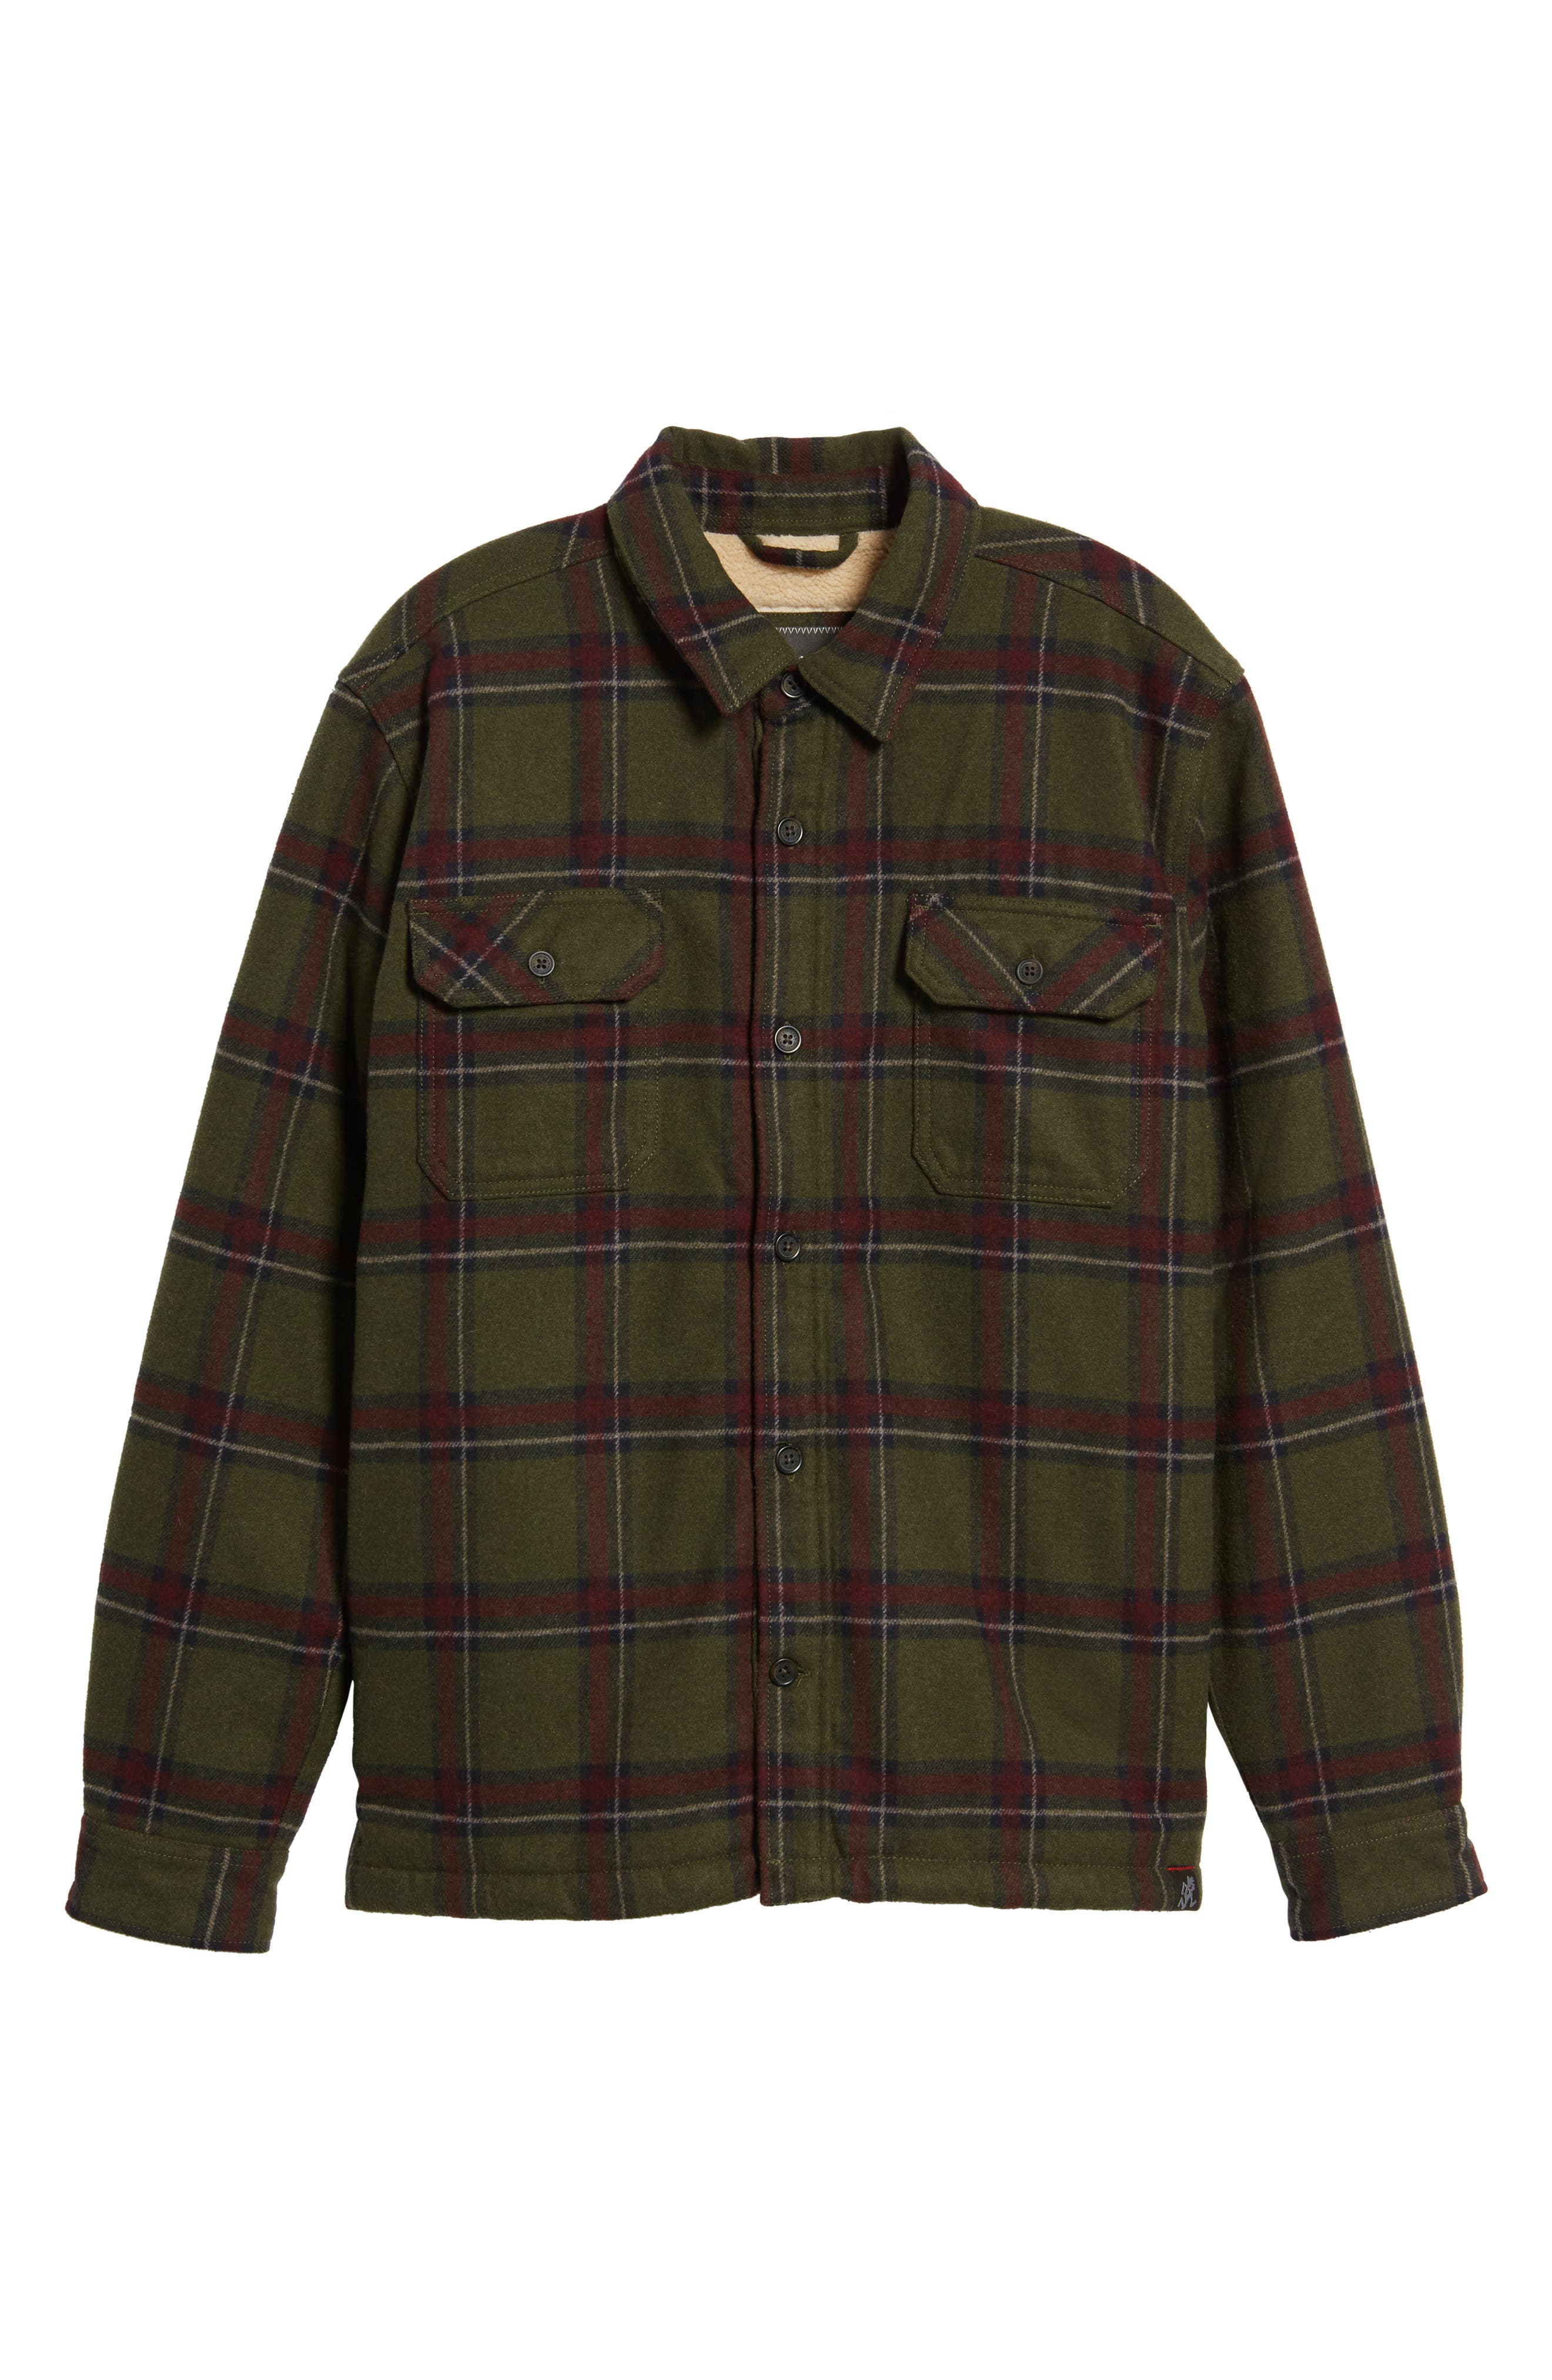 Tough Guy Plush Lined Flannel Shirt Jacket,                             Alternate thumbnail 6, color,                             Olive